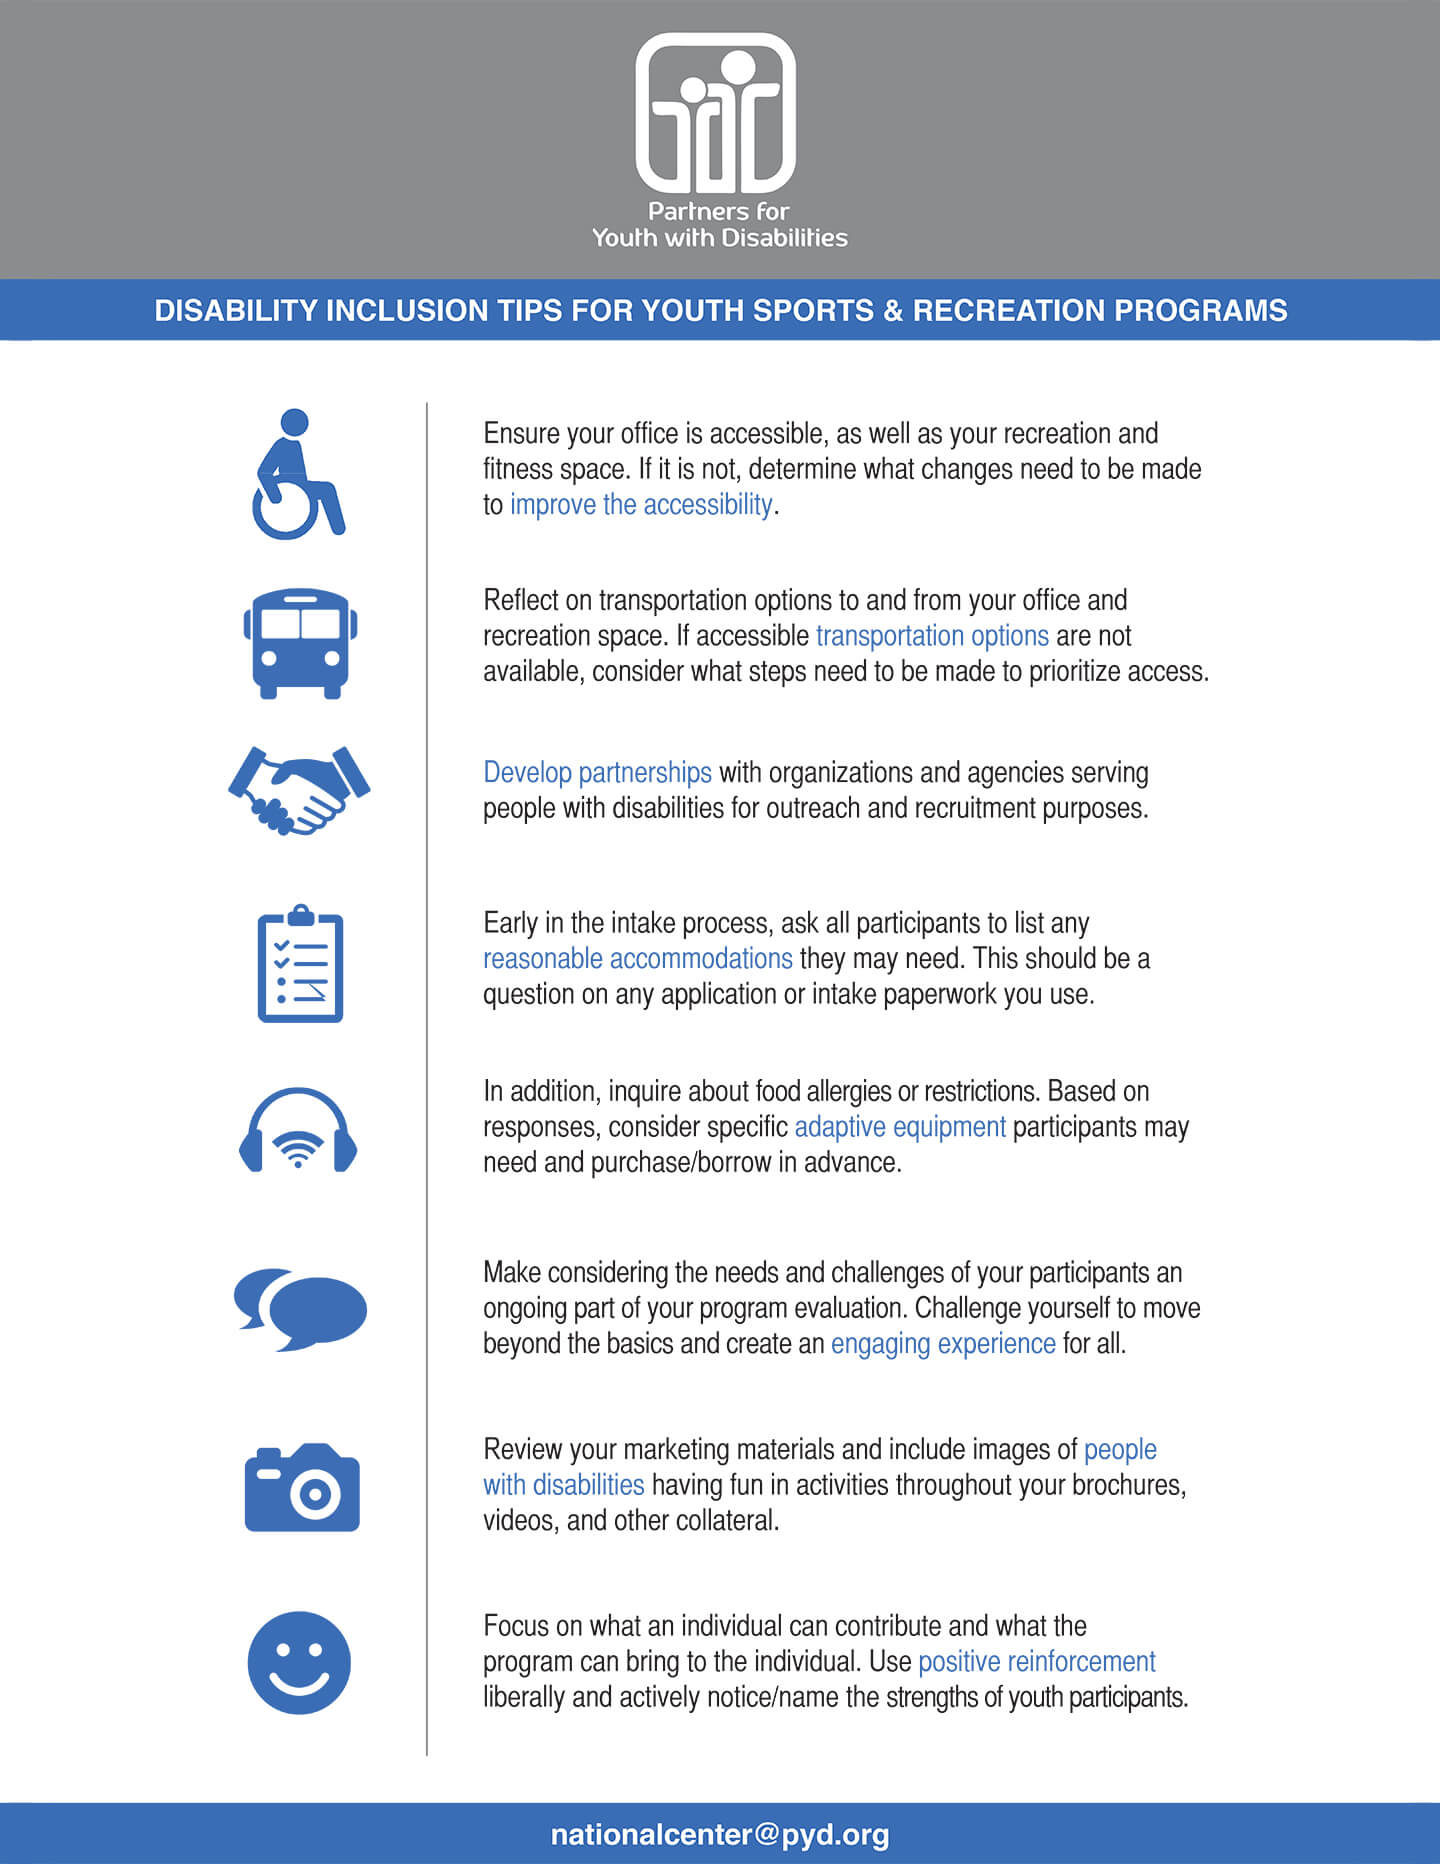 Disability Inclusion Tips for Youth Sports & Recreation Programs